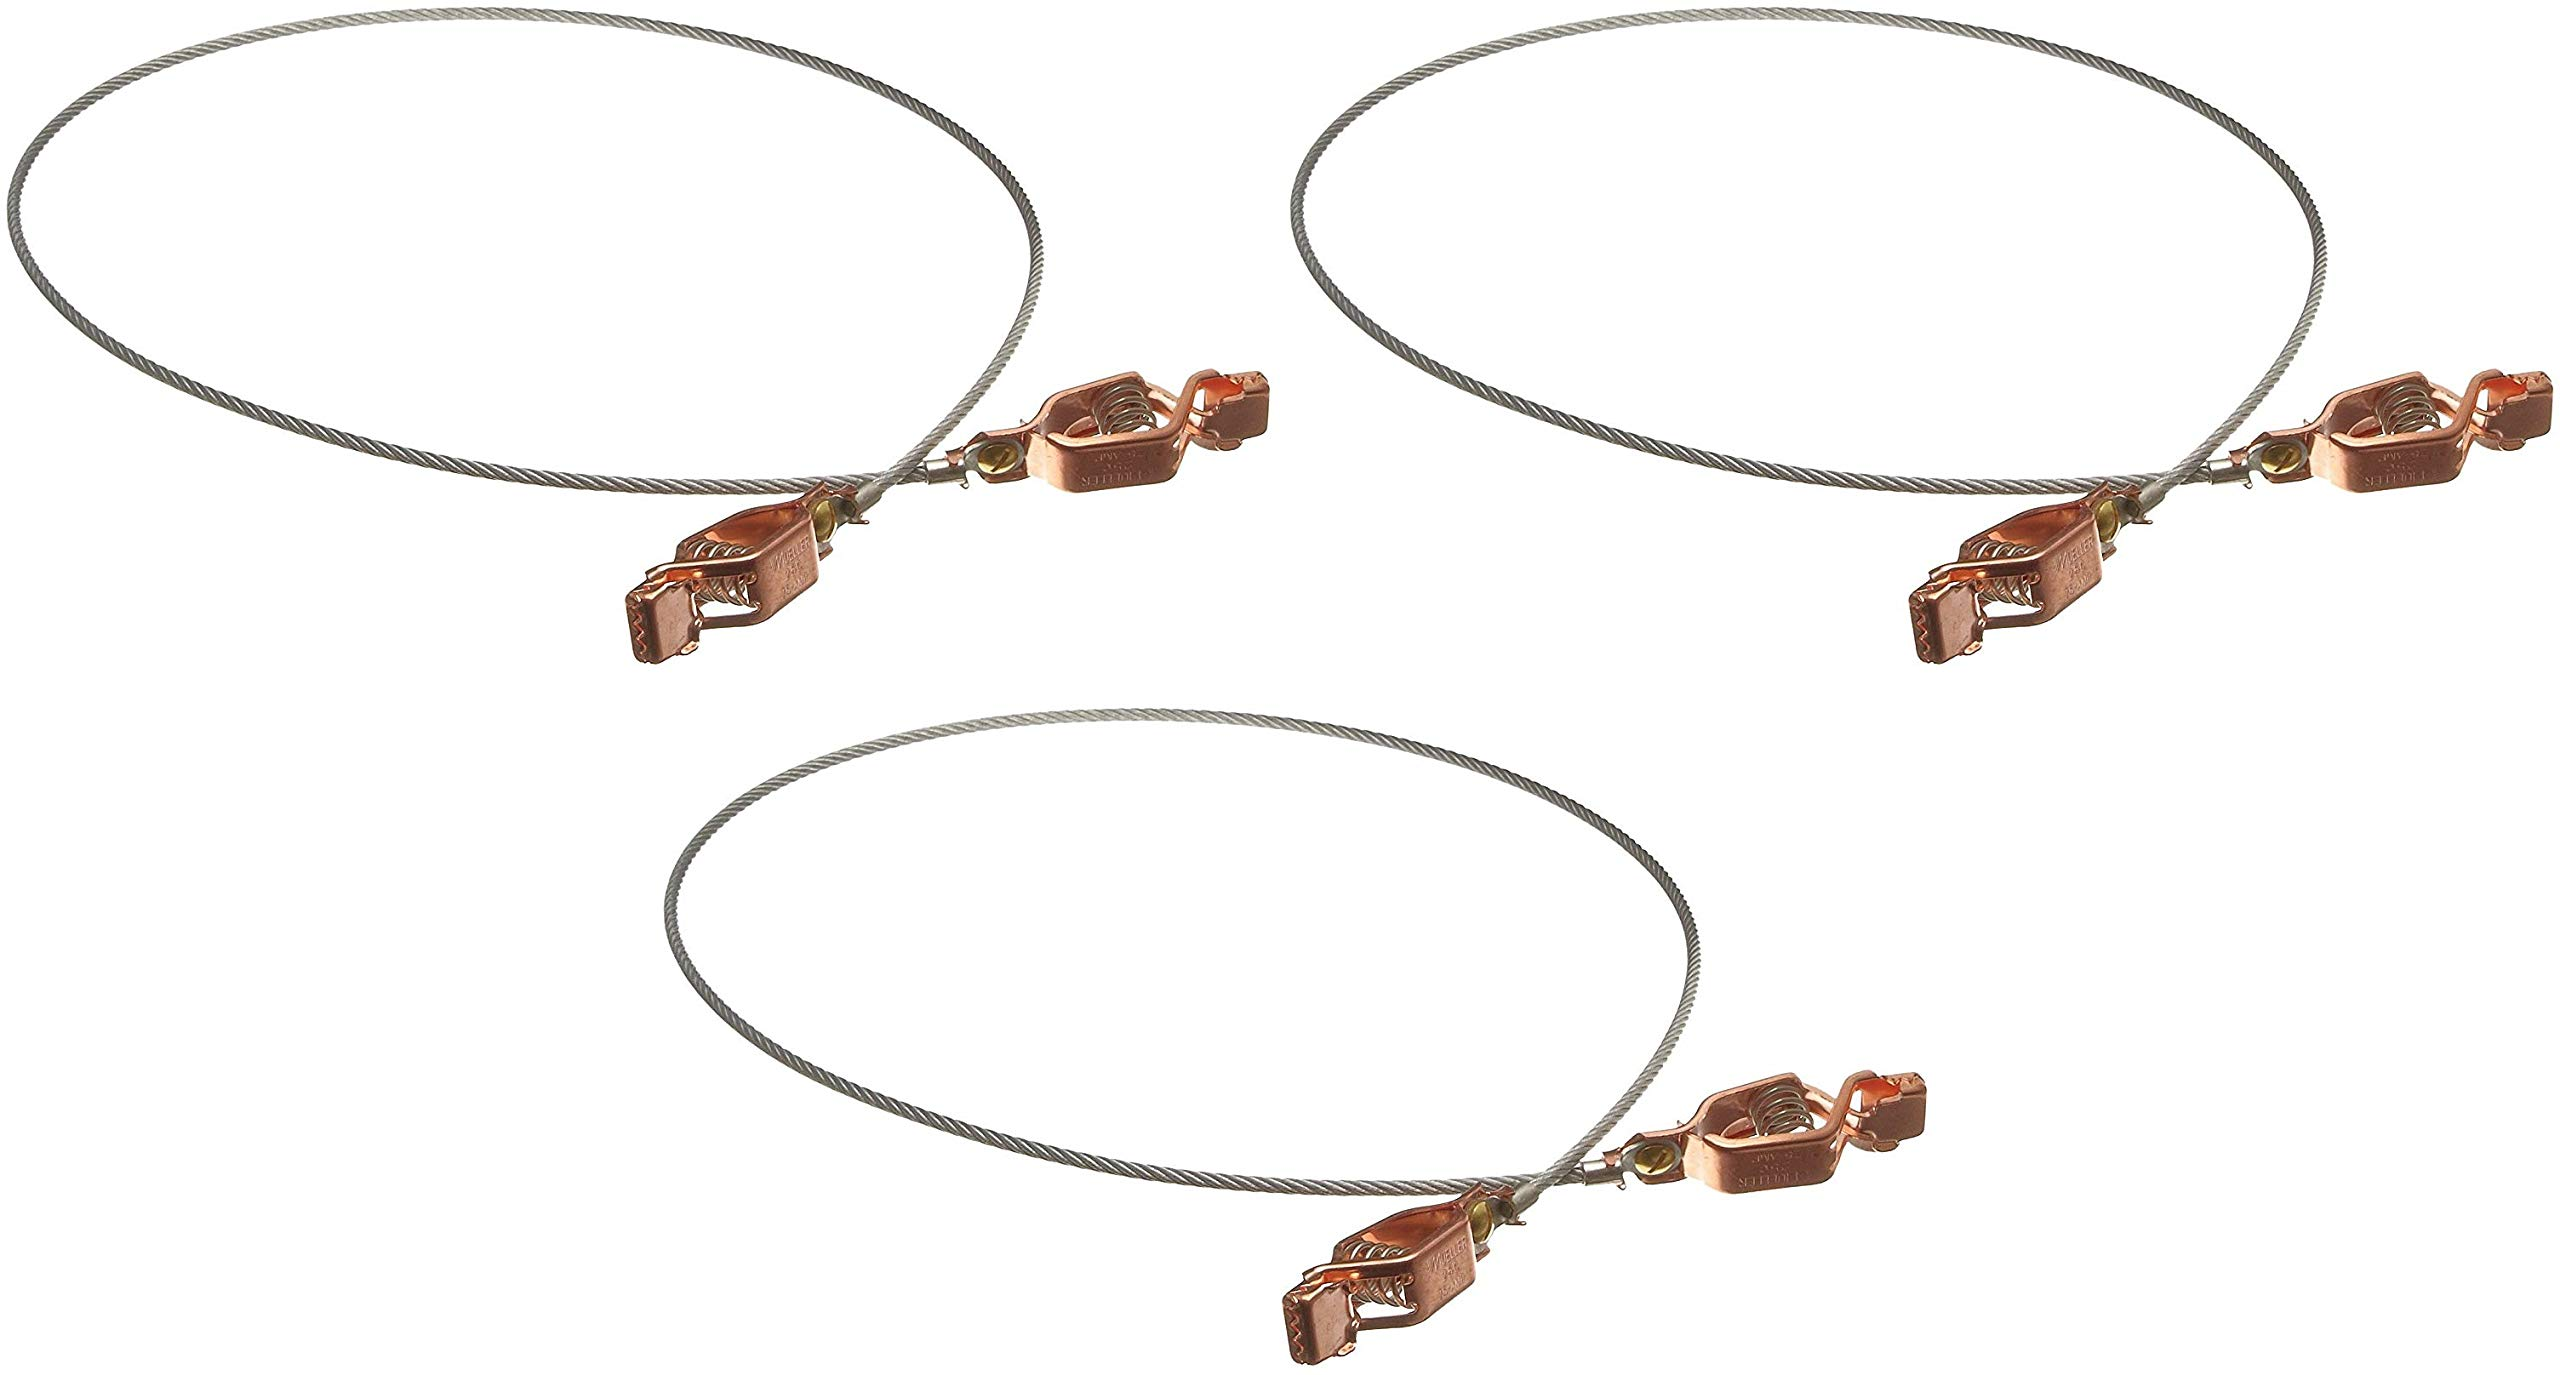 Justrite 08500 3' Long Flexible Bonding Wire with Two Clips (Pack of 3)